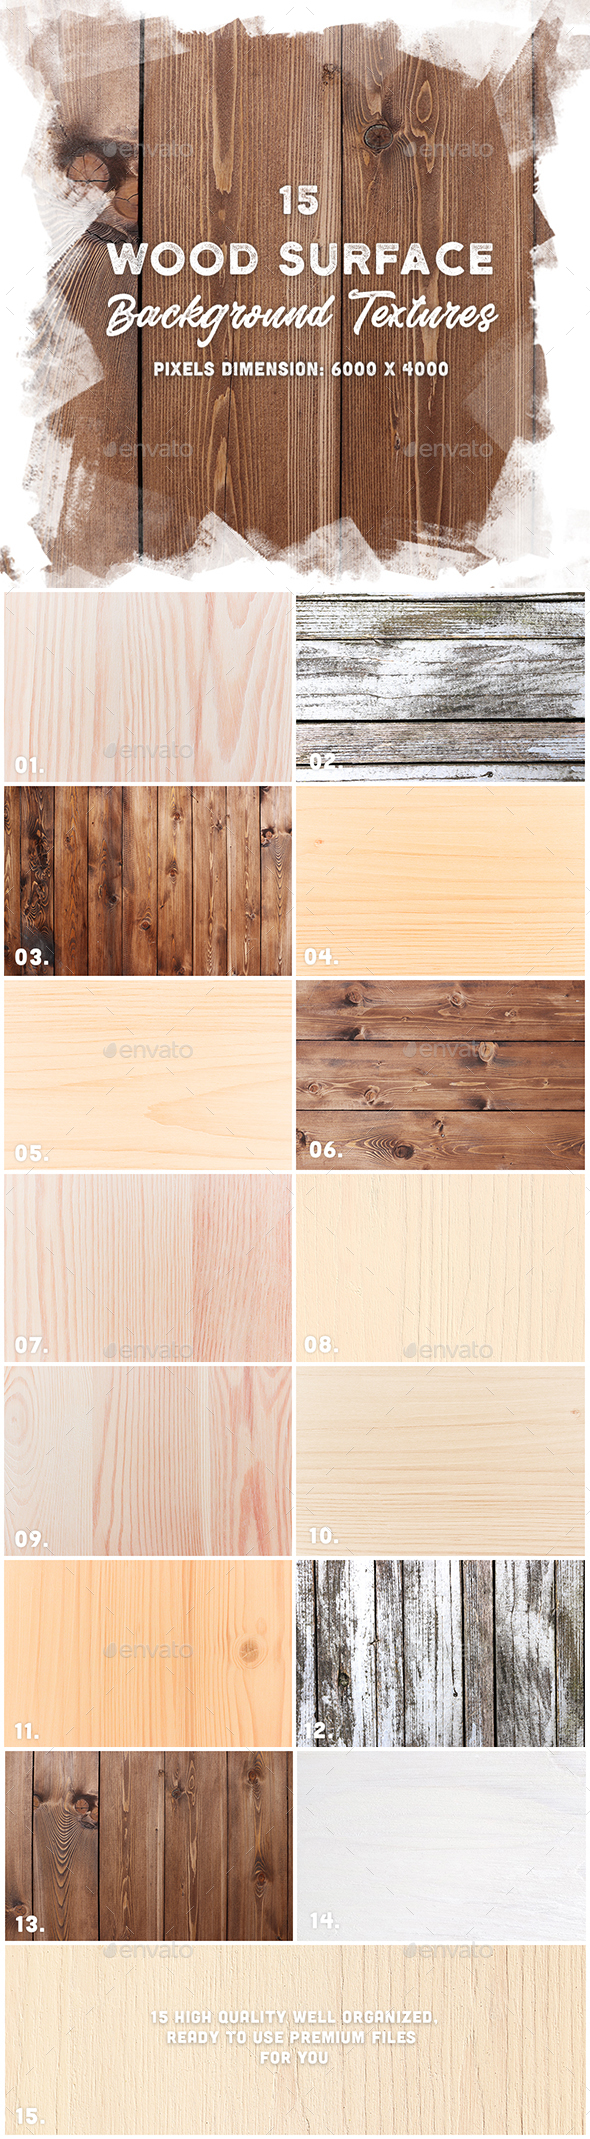 15 Wood Surface Background Textures - Wood Textures